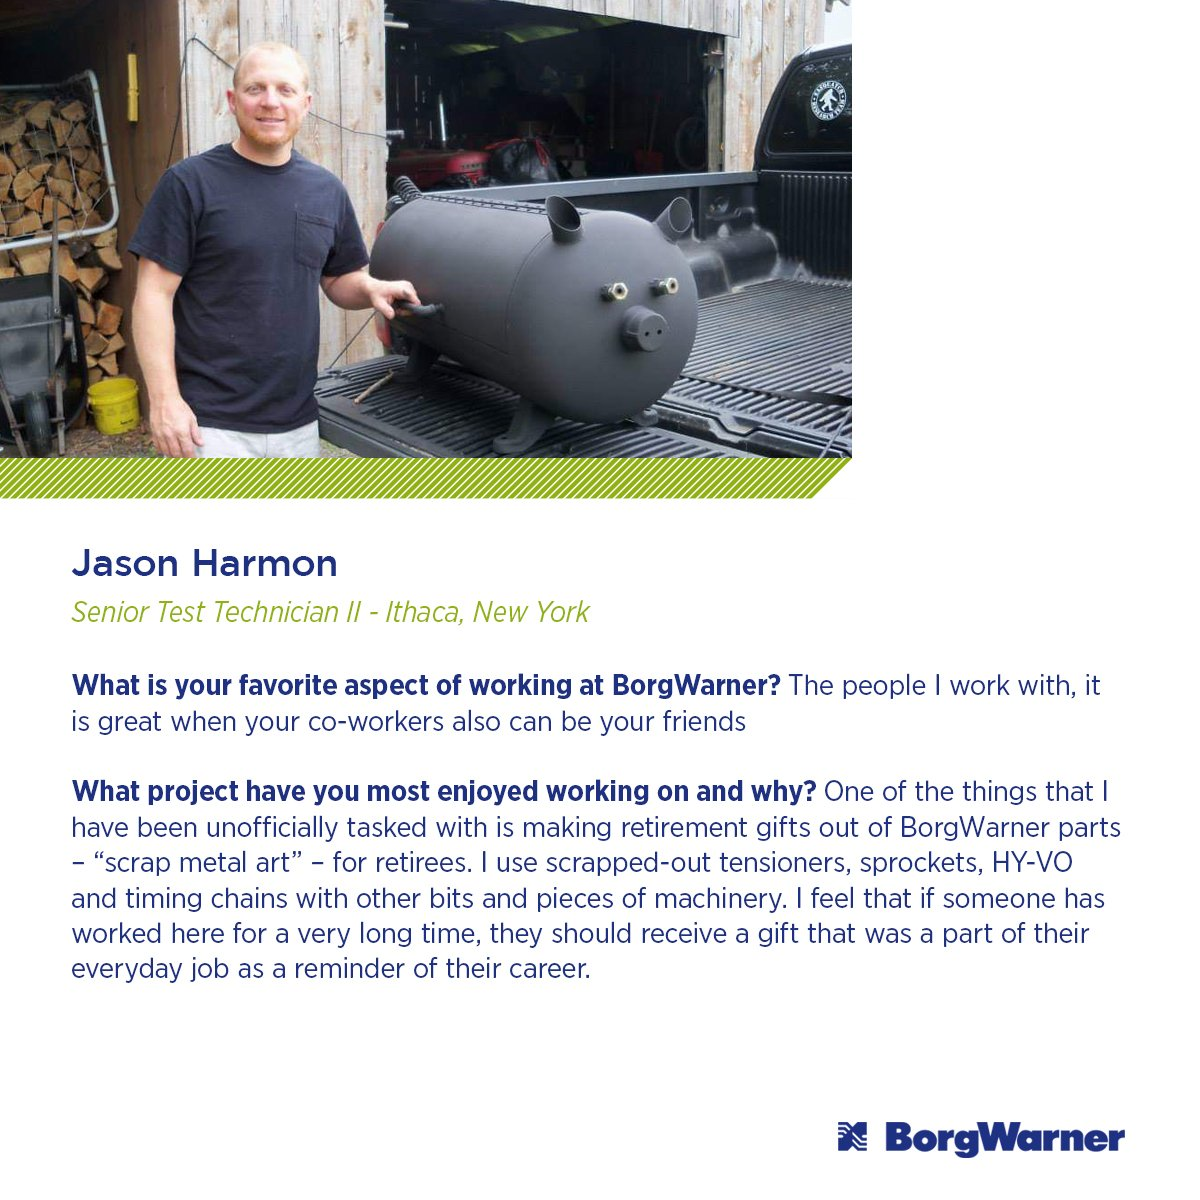 Today, our employee spotlight is on Jason Harmon, a senior test technician with a unique hobby. Learn more about him here: